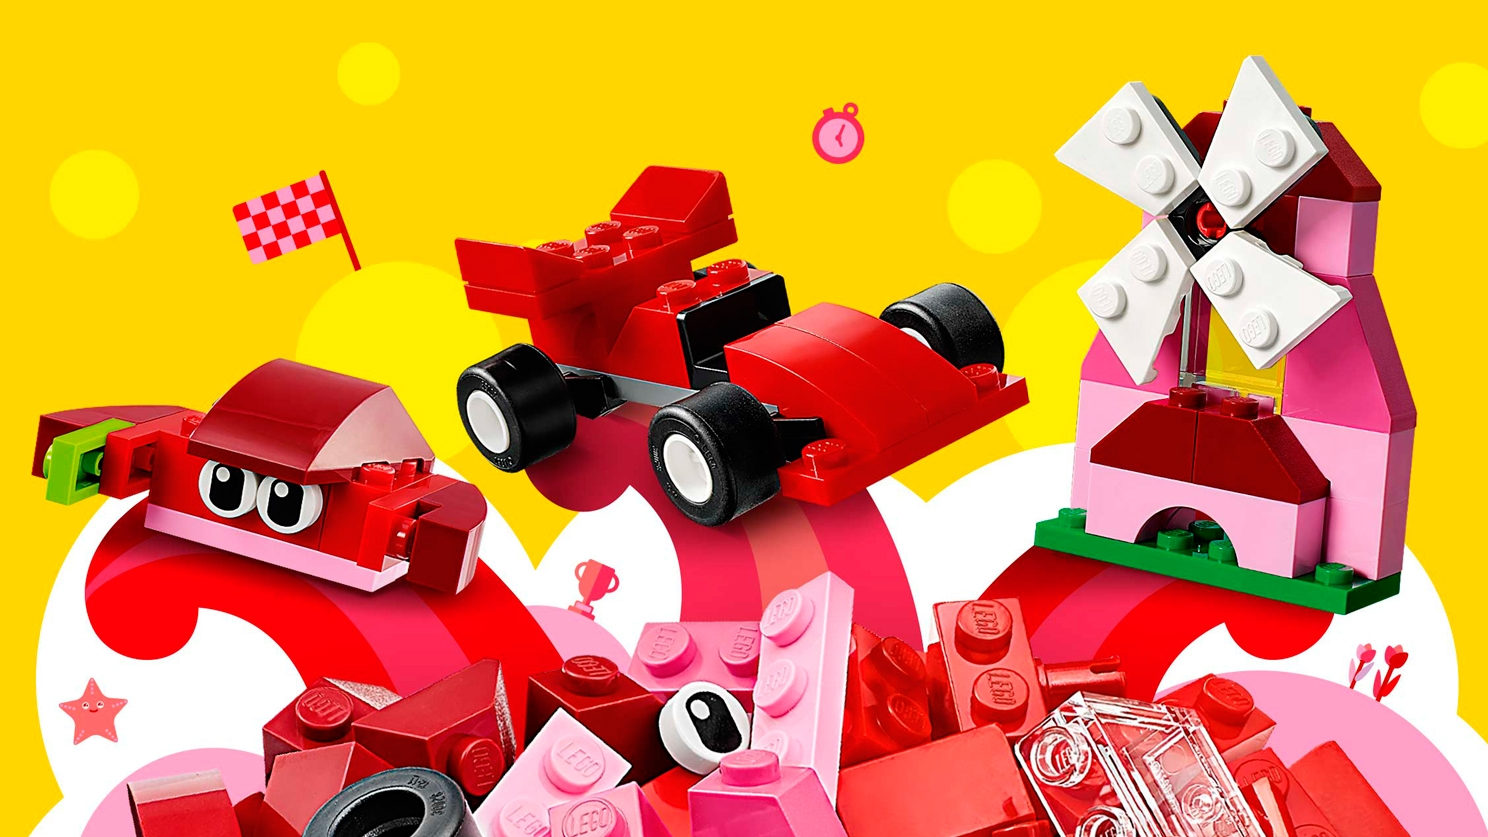 LEGO Classic Red Creativity Box - 10707 - Use red and pink bricks to build a crab, a race car or a mill!